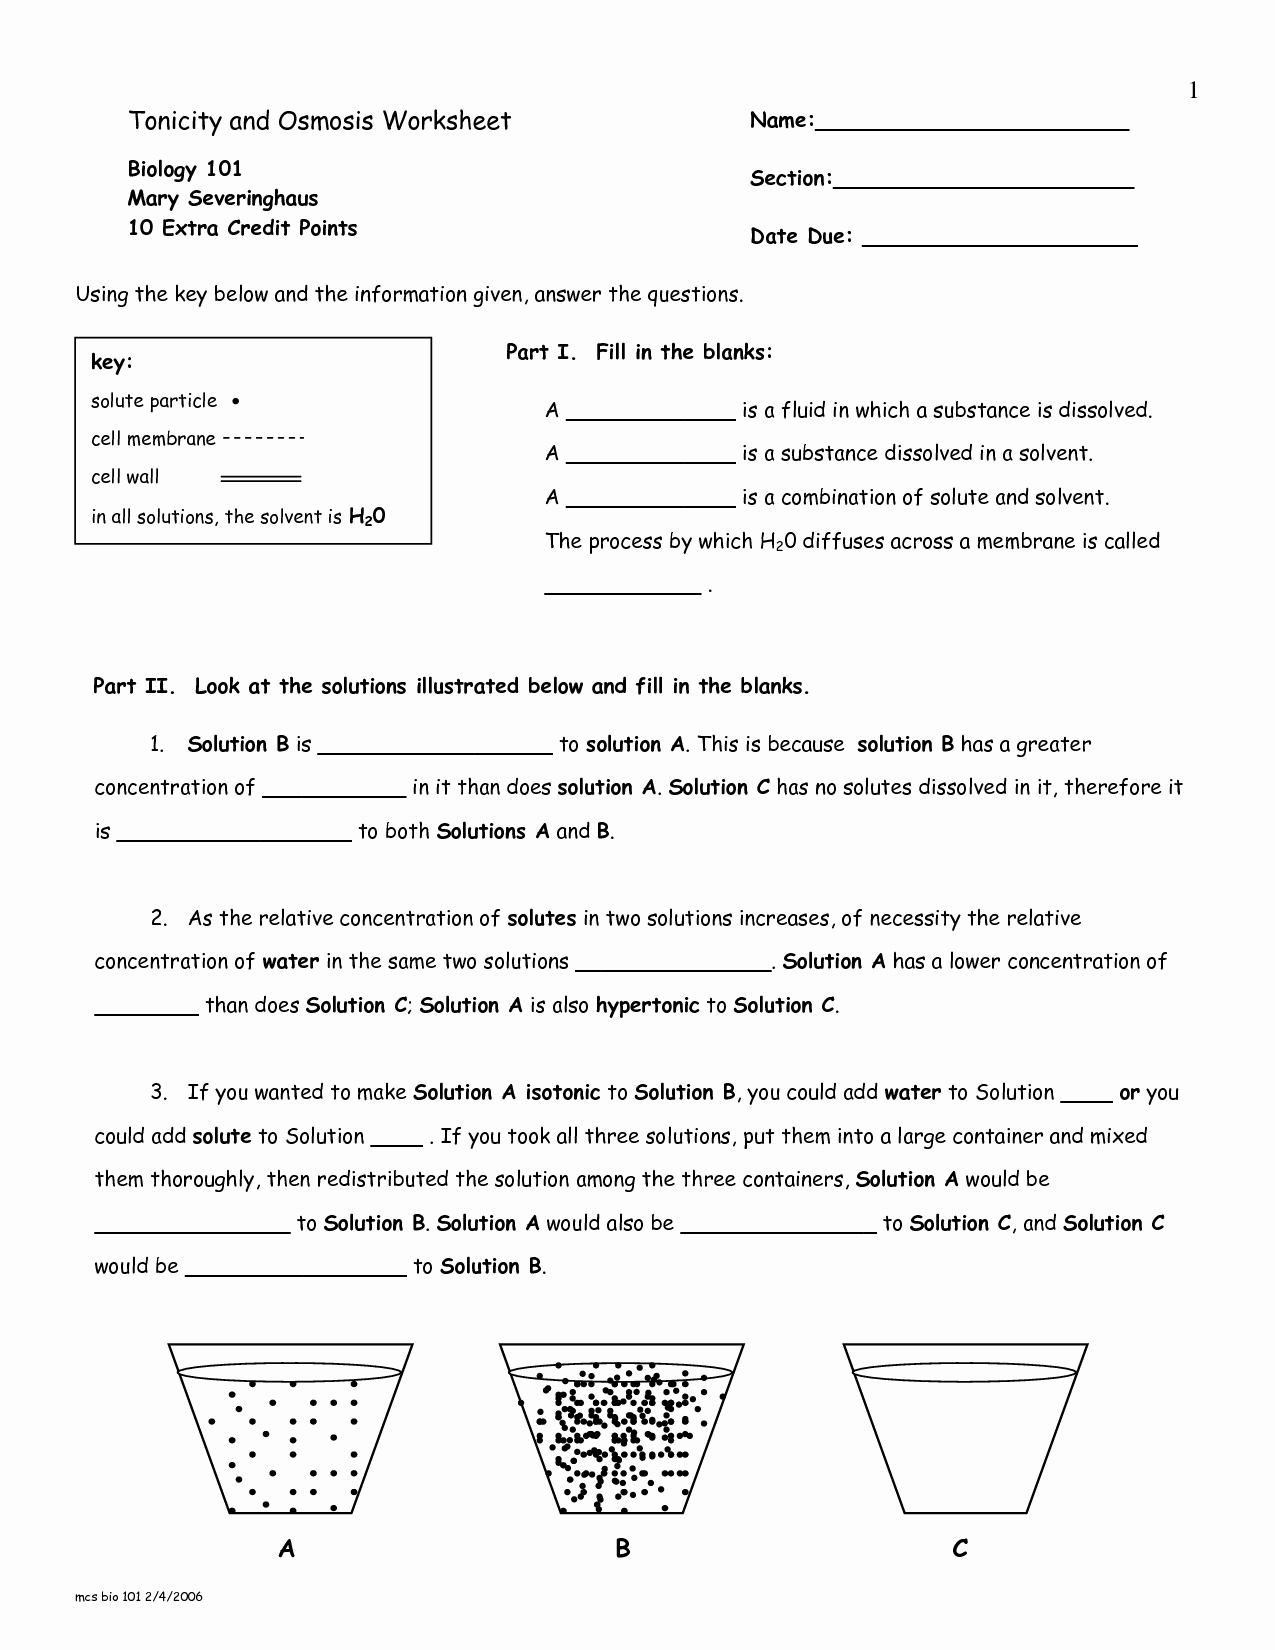 50 Osmosis And Tonicity Worksheet